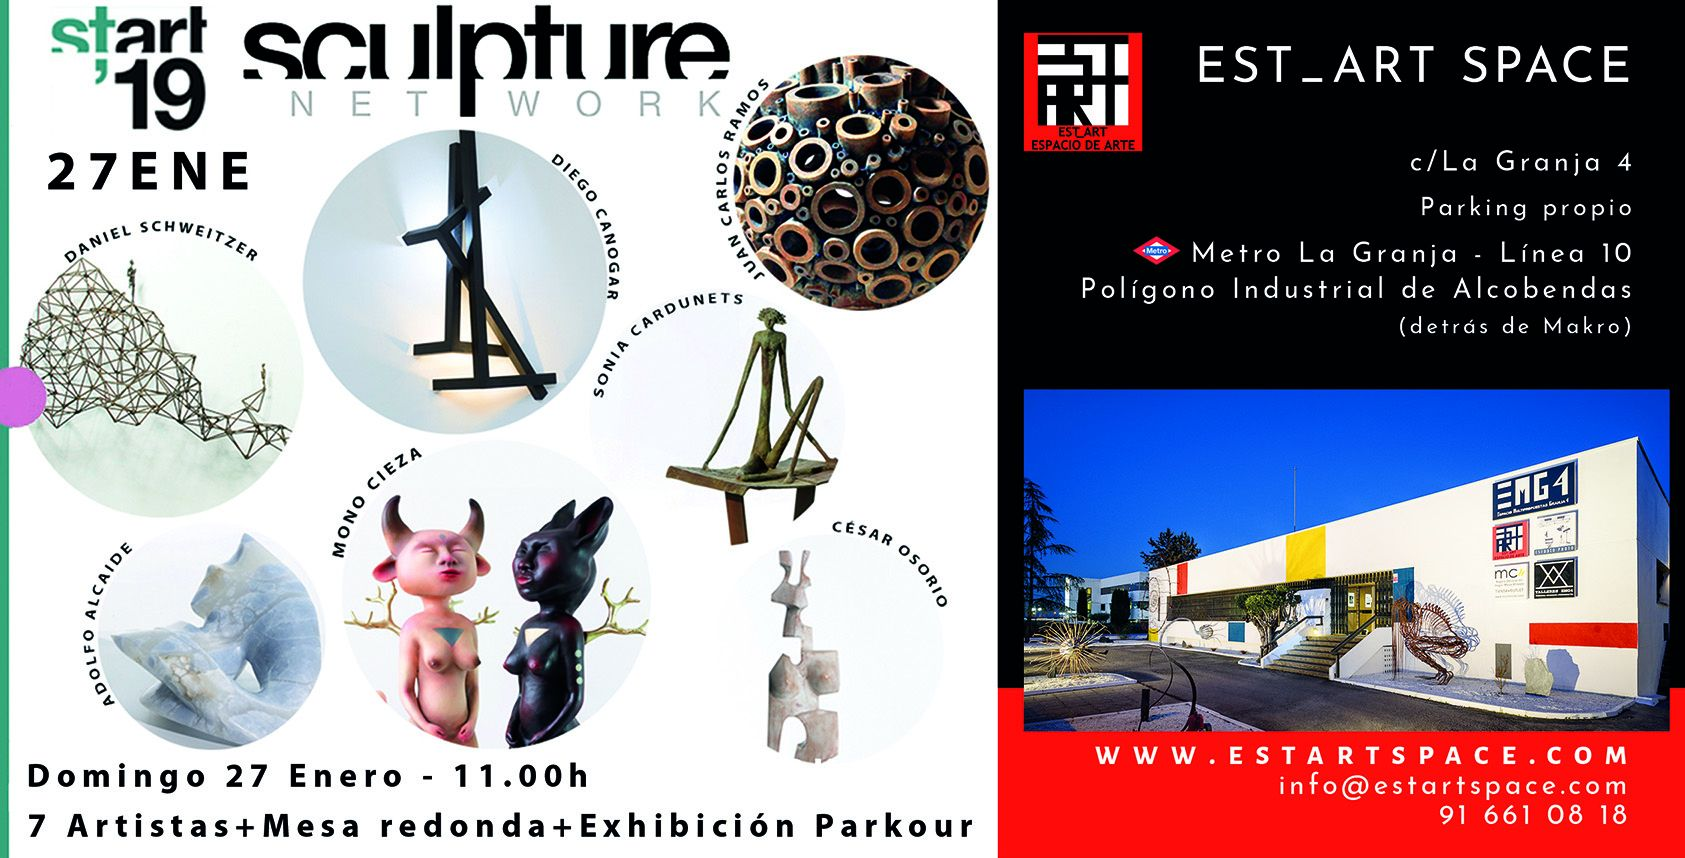 Foto de SCULPTURE NETWORK START19 en EST_ART